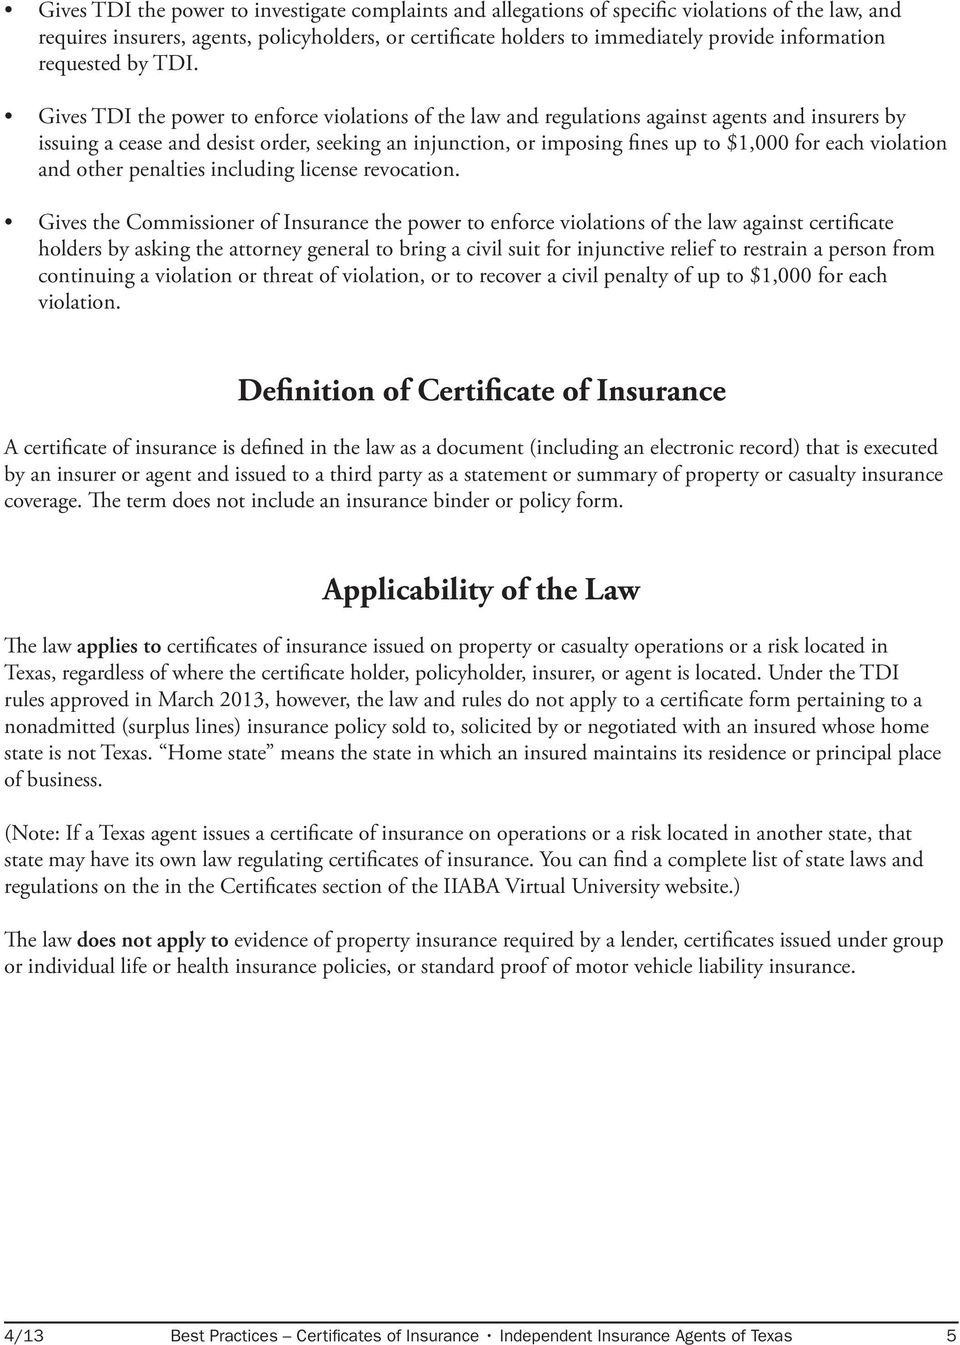 Gives TDI the power to enforce violations of the law and regulations against agents and insurers by issuing a cease and desist order, seeking an injunction, or imposing fines up to $1,000 for each